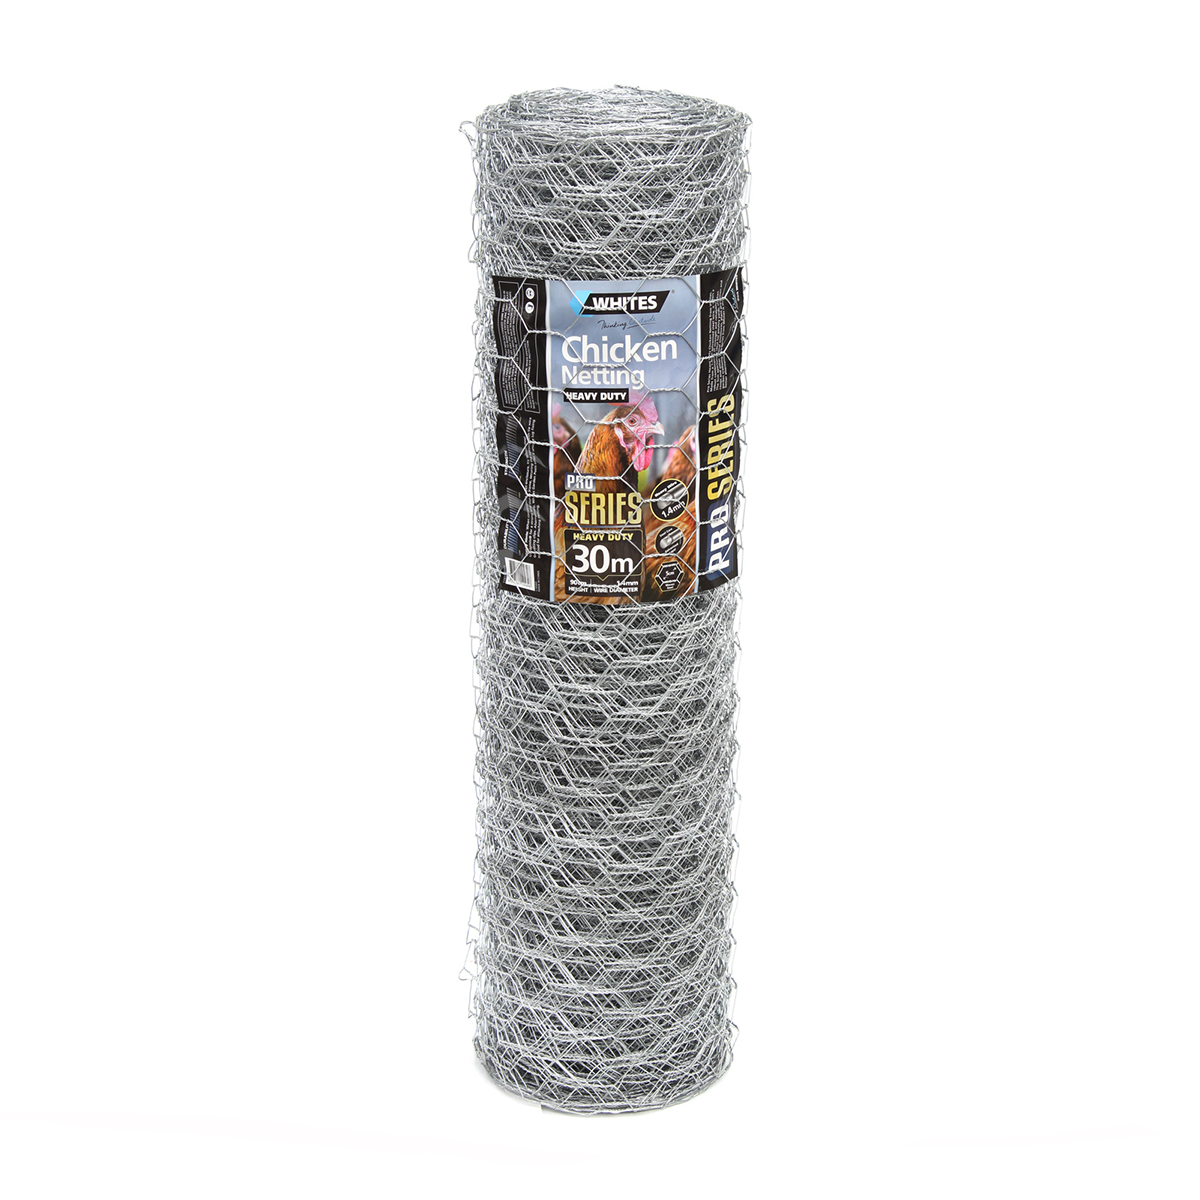 10469 pro series hd chicken netting 90x5x1.4 30m